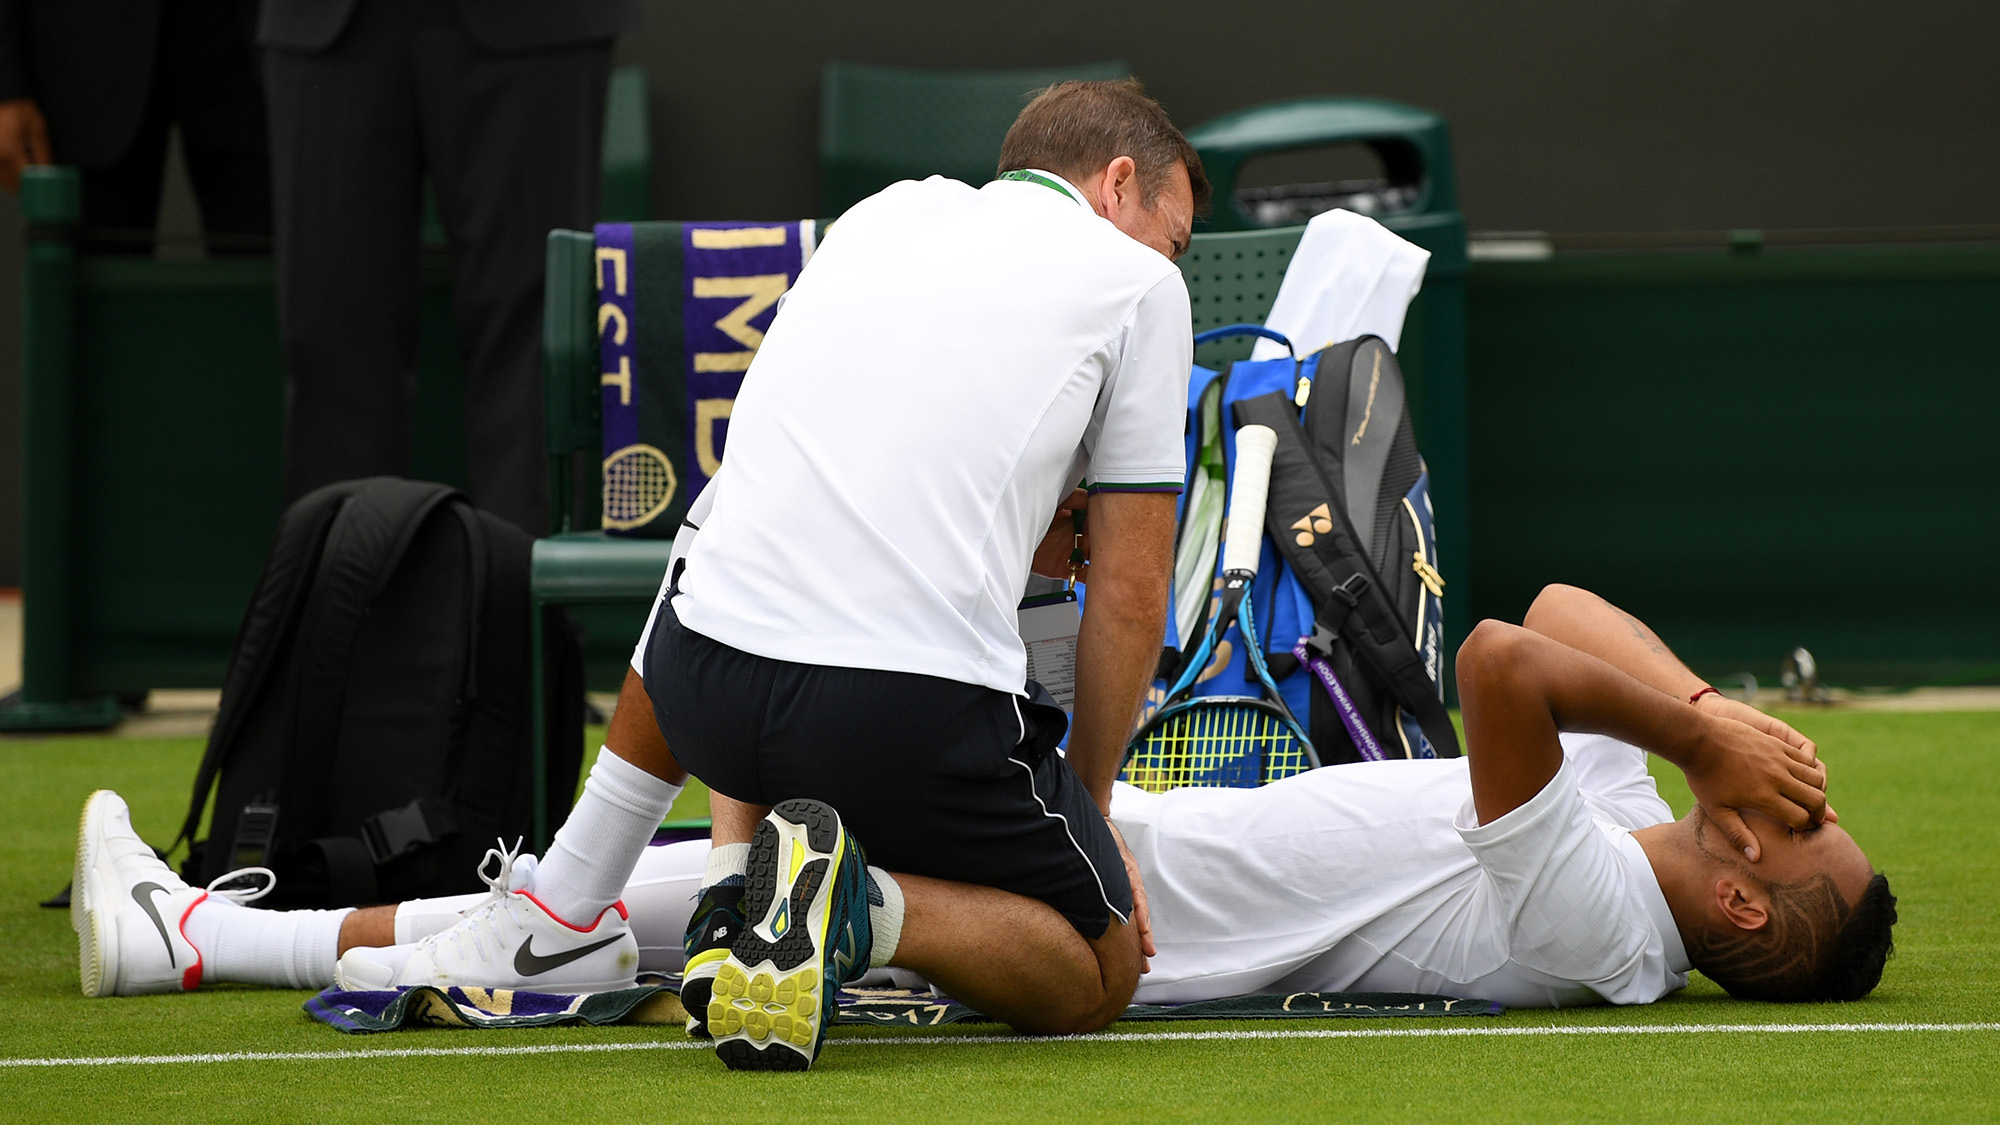 Wimble-DONE: Nick Kyrgios out after an hour on court